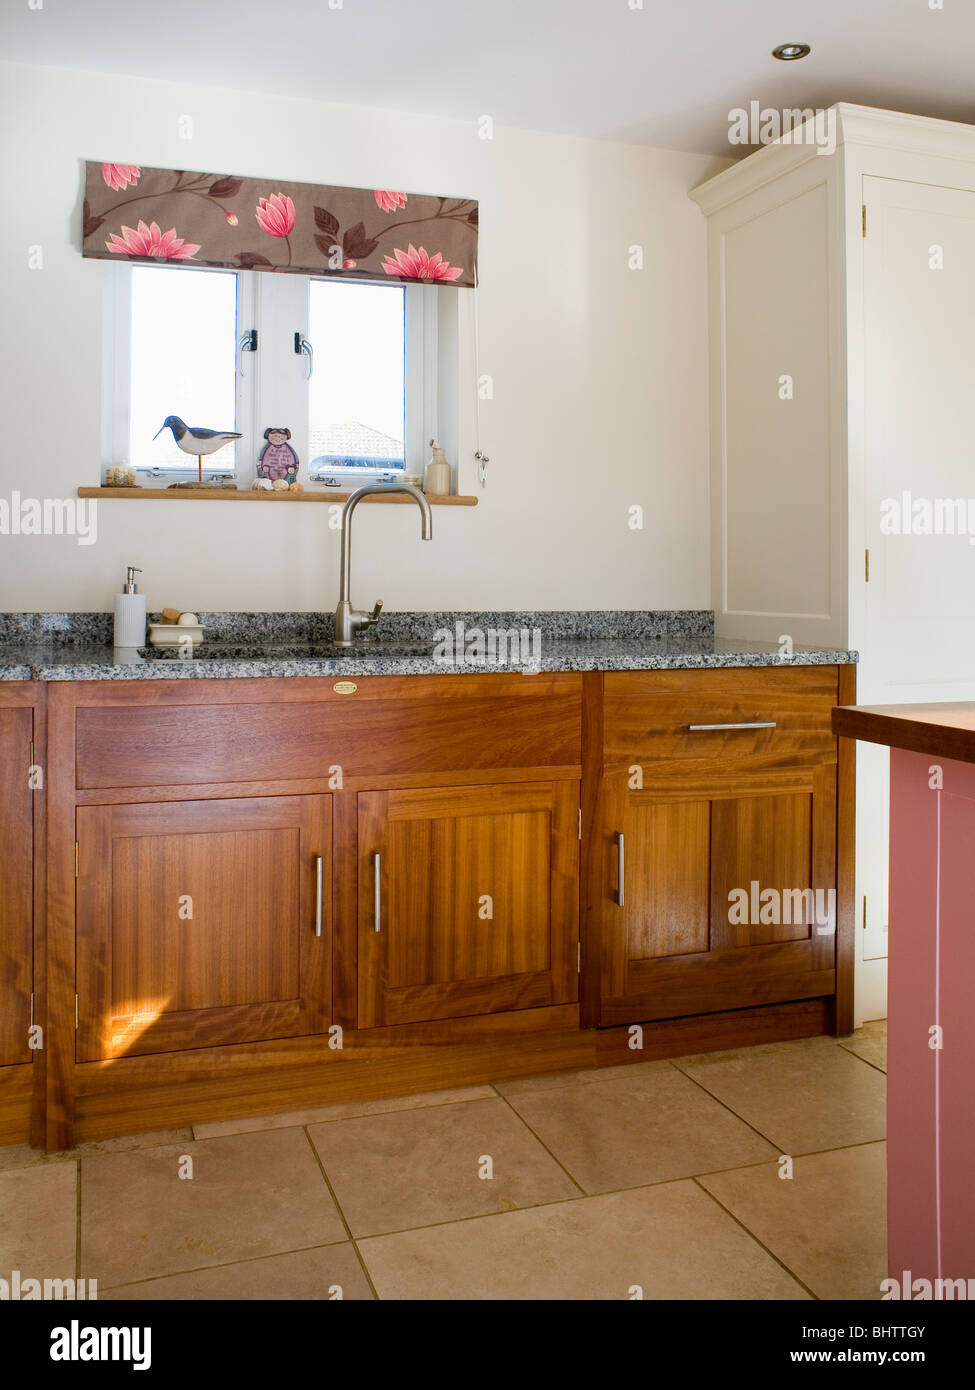 Dark Wood Country Kitchen floral blind on small window above sink in modern country kitchen